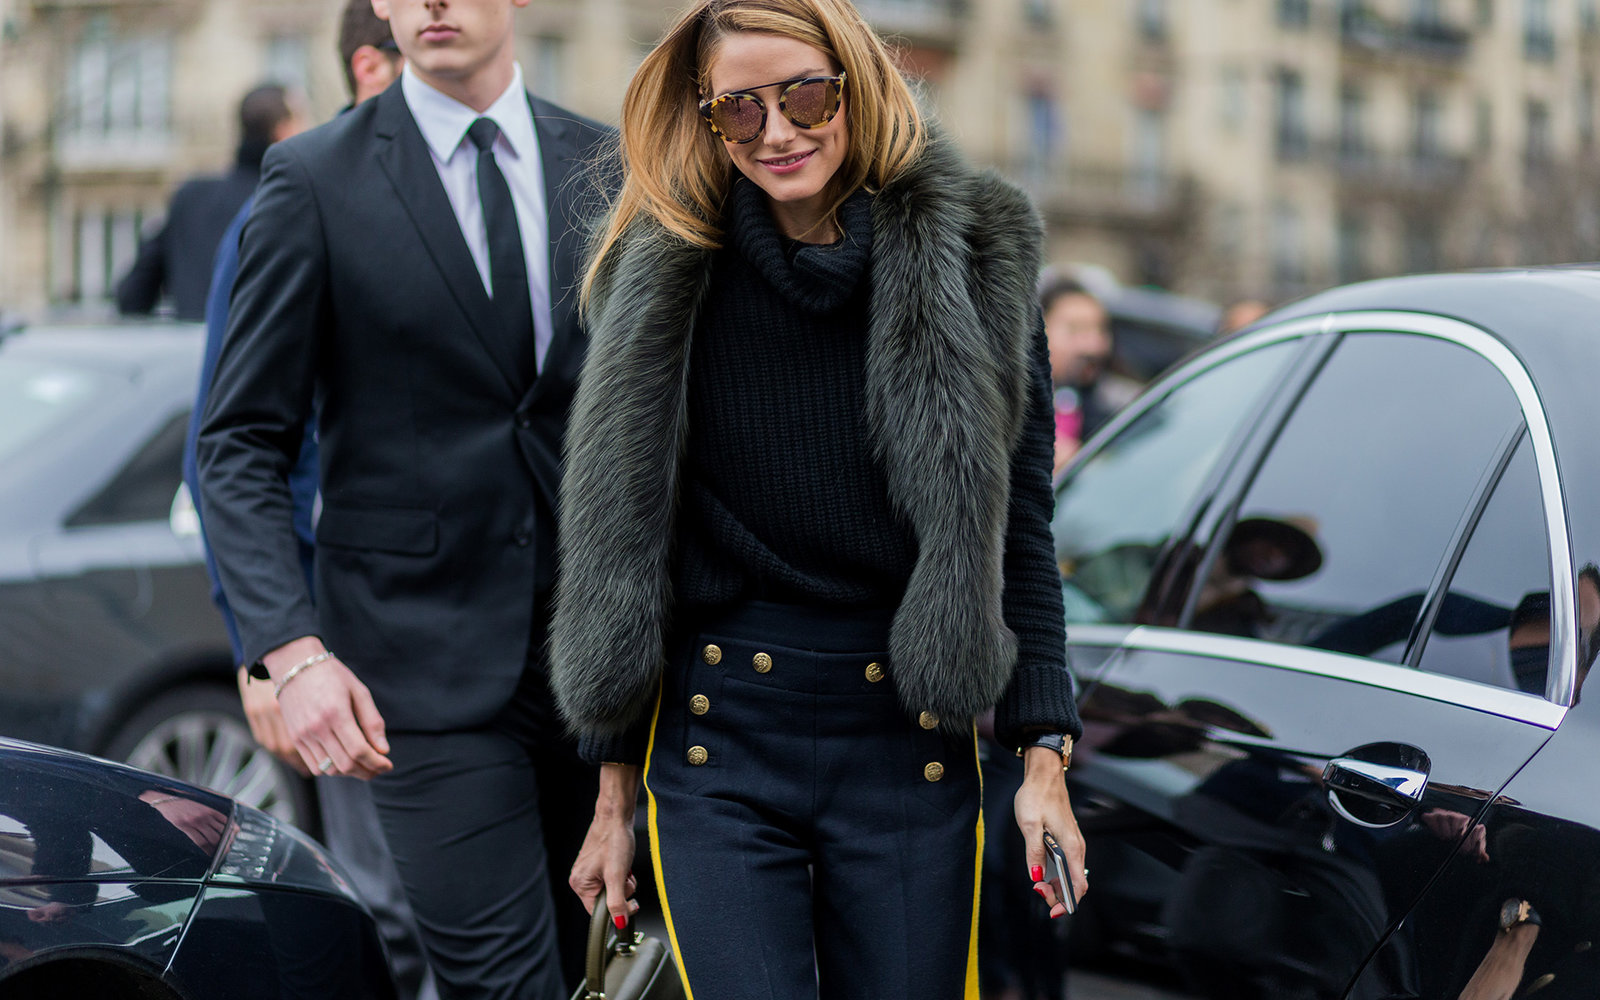 PARIS, FRANCE - January 27:  Olivia Palermo outside Elie Saab during the Paris Fashion Week -Haute Couture- Spring/Summer 2016 on January 27, 2016 in Paris, France.  (Photo by Christian Vierig/Getty Images)